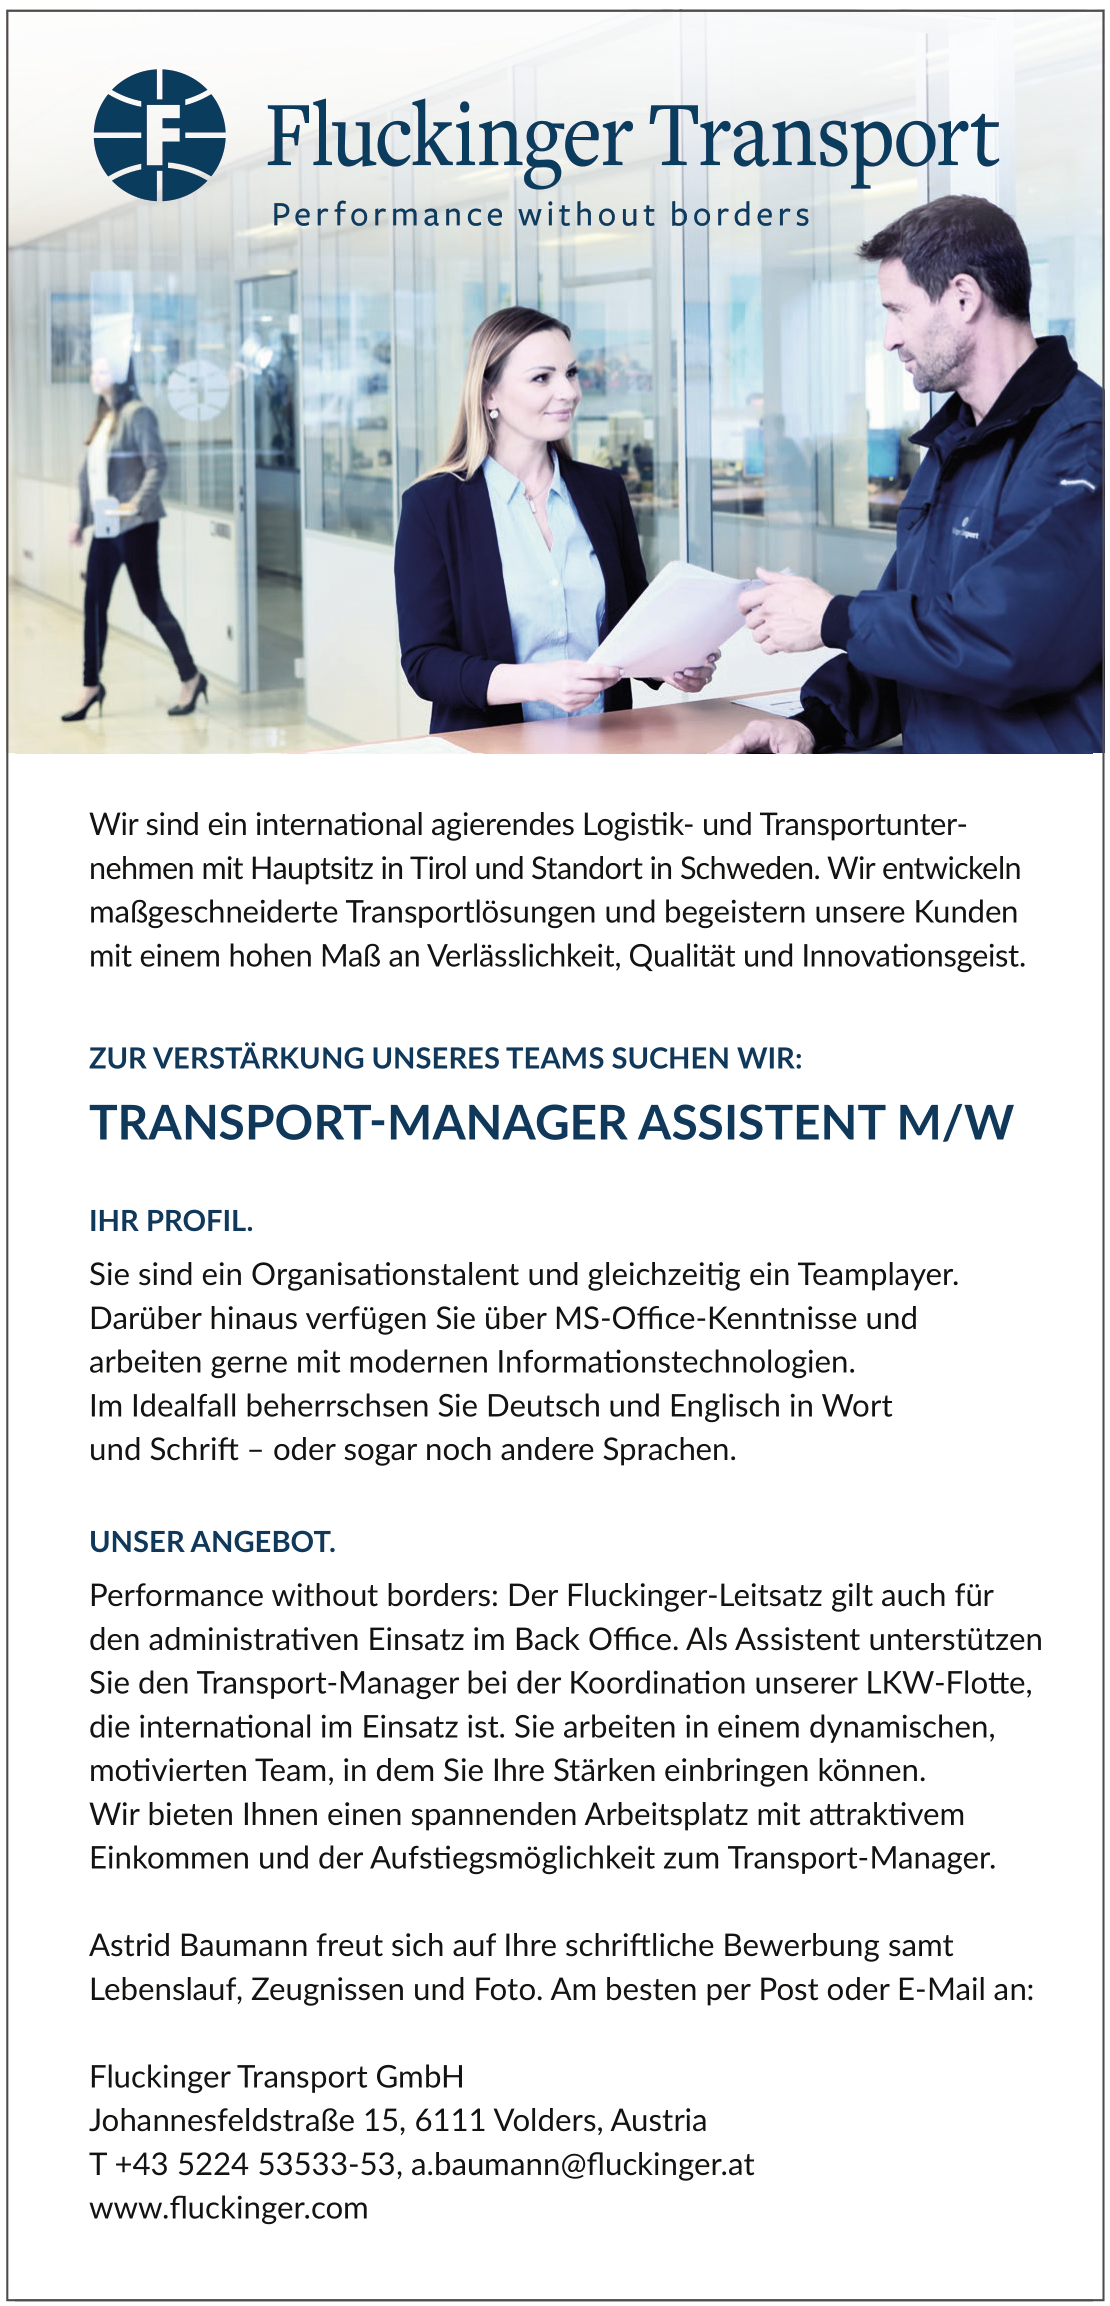 TRANSPORT-MANAGER ASSISTENT M/W